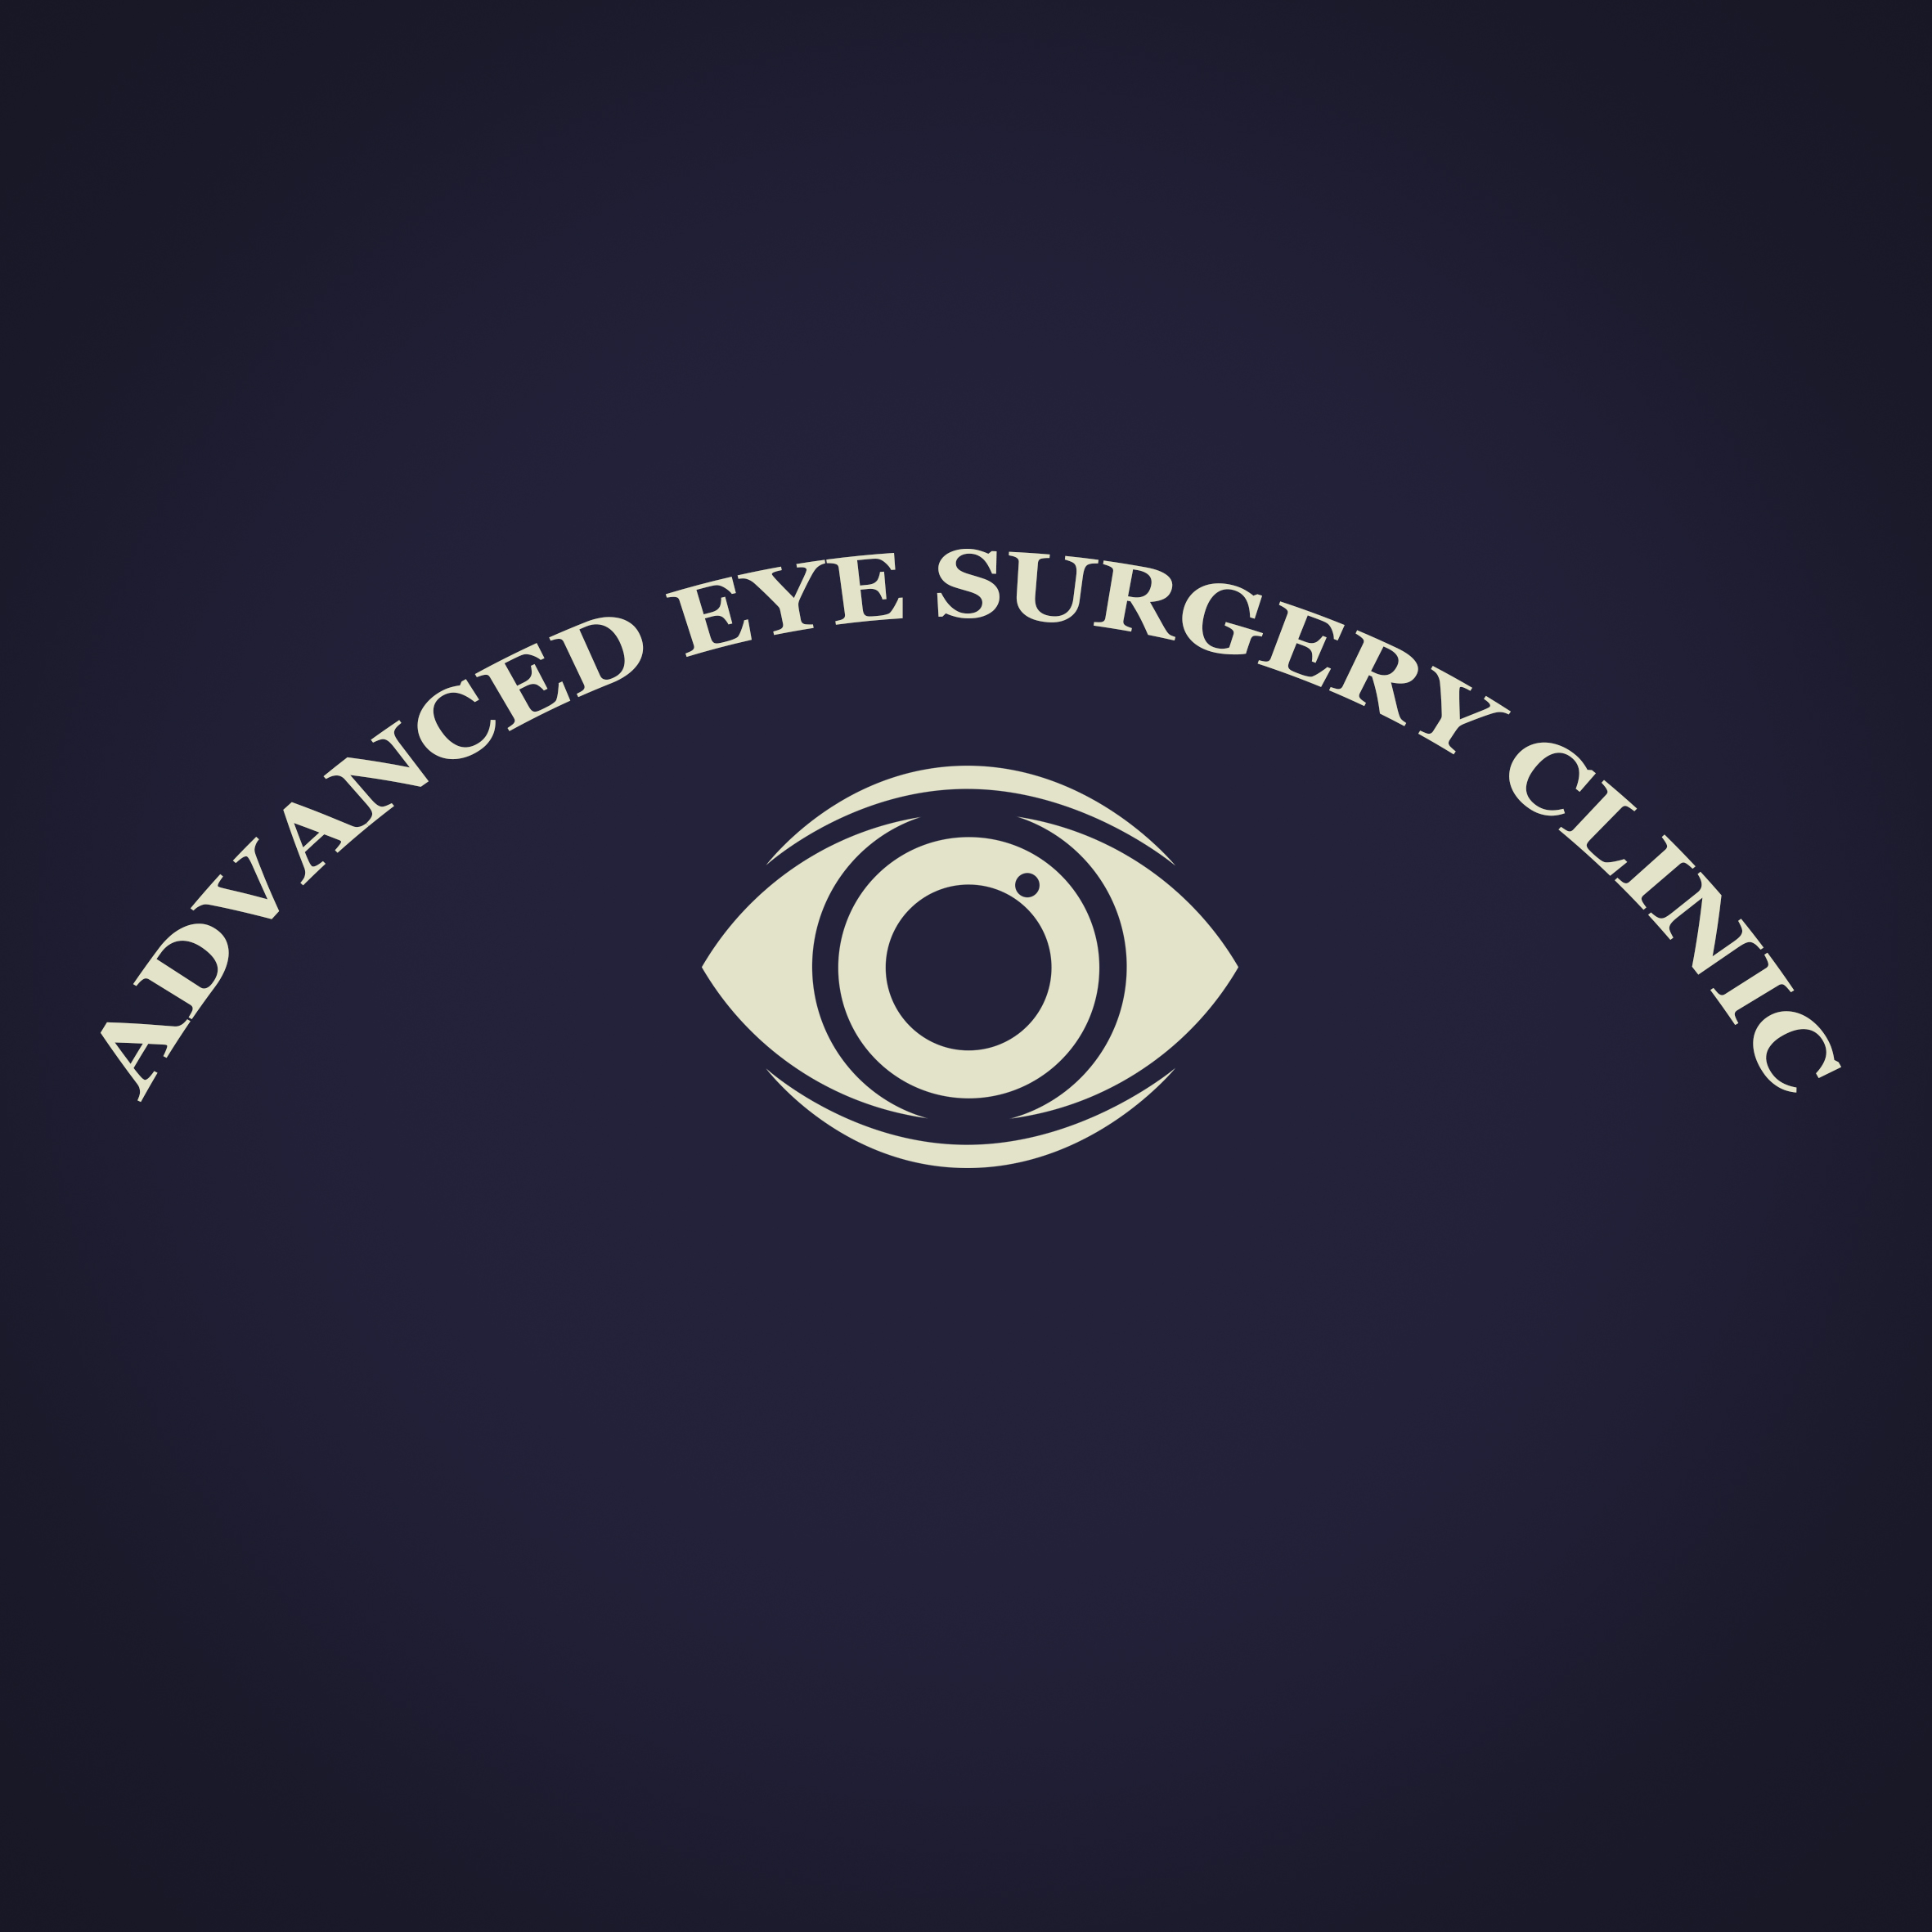 Advanced eye surgery clinic